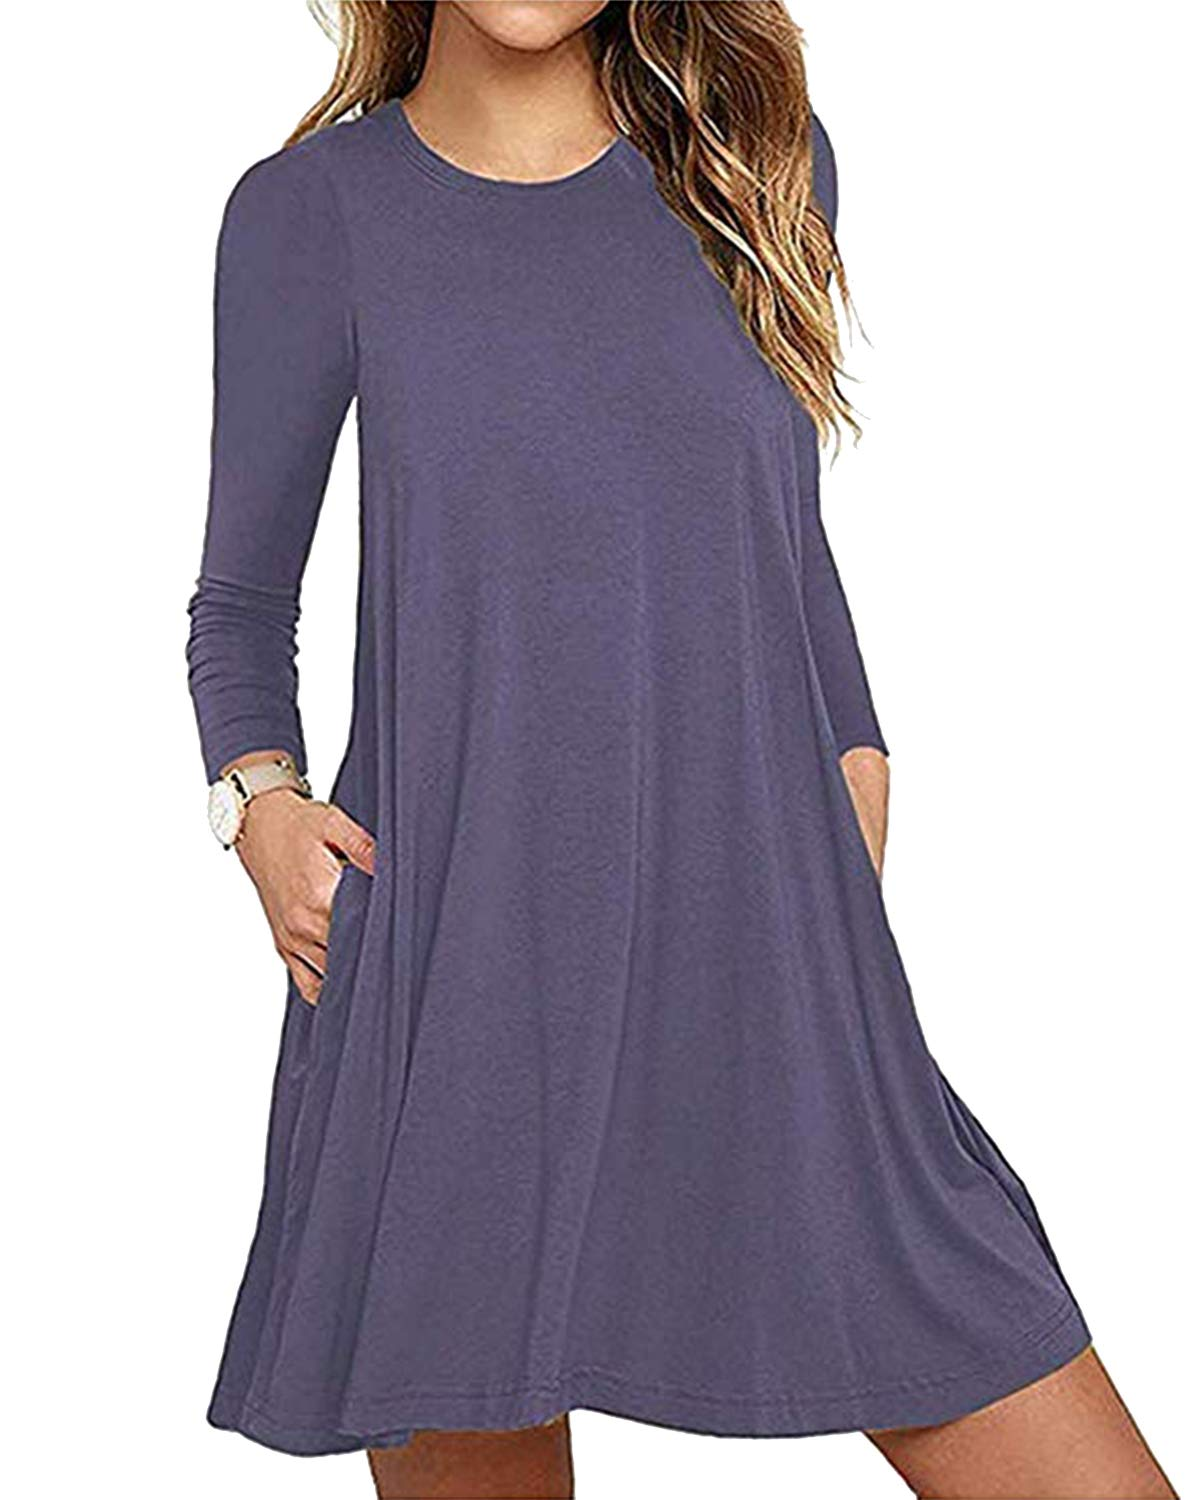 Deesdail Long Tunics for Women to Wear with Leggings, Ladies Crew Neck Raglan Sleeves Midi Dresses with Pockets Casual Flowy T-Shirt Dress